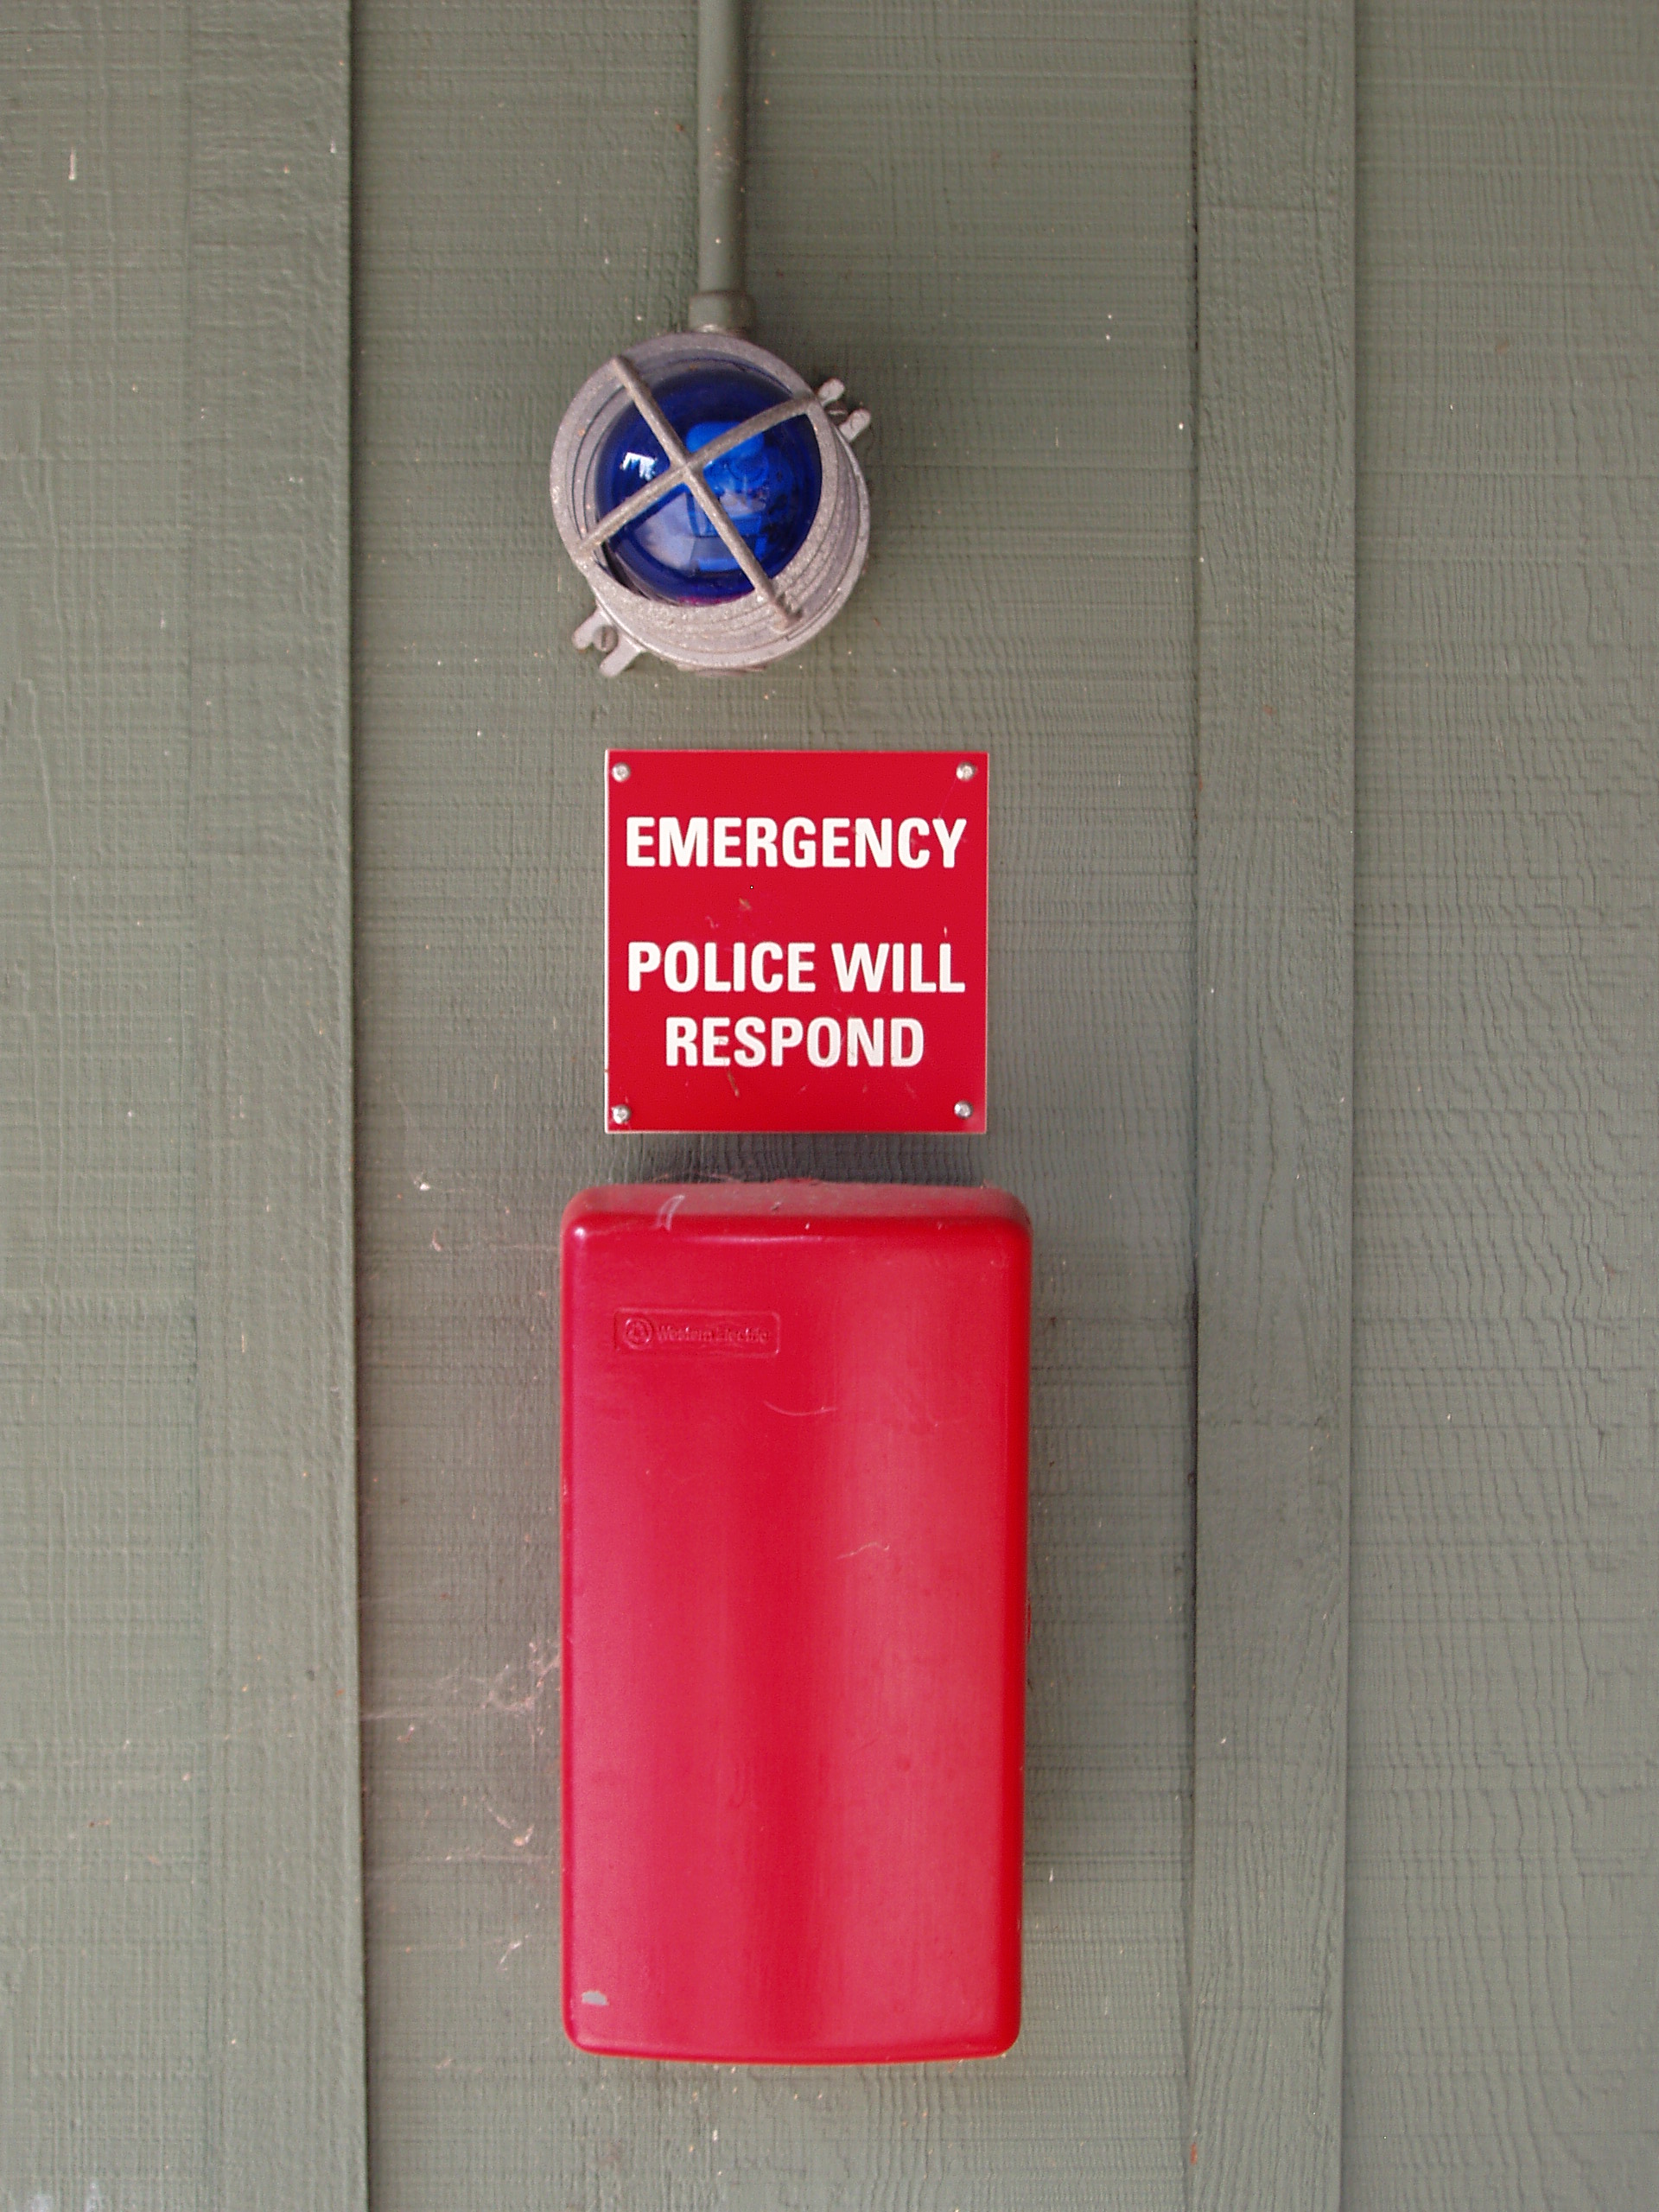 Photo of handset-style emergency phone box